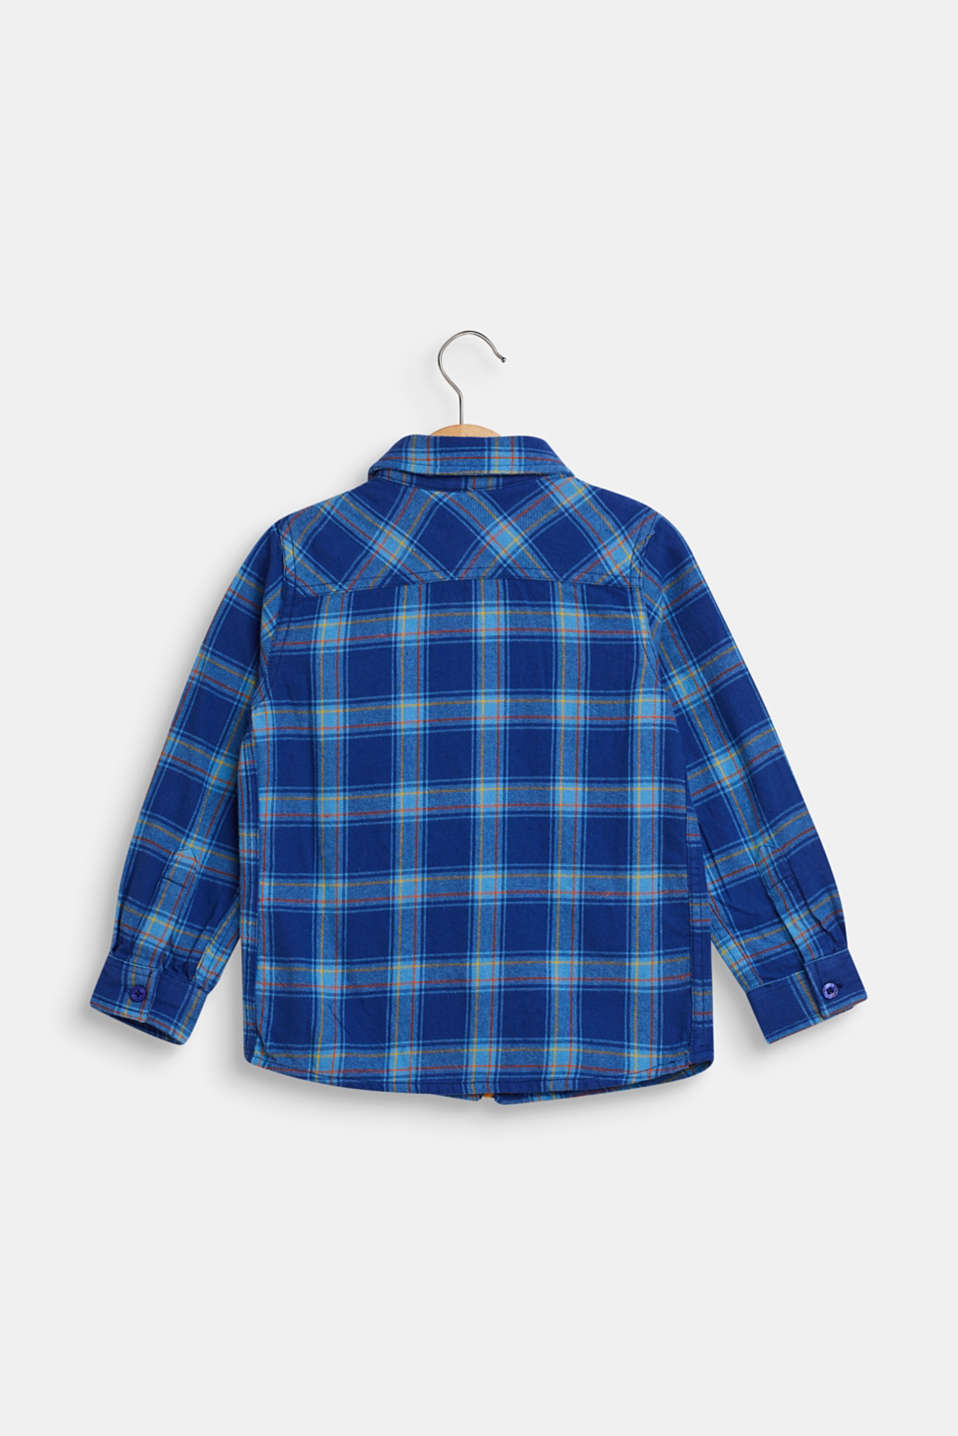 Checked flannel shirt, 100% cotton, indigo, detail image number 1